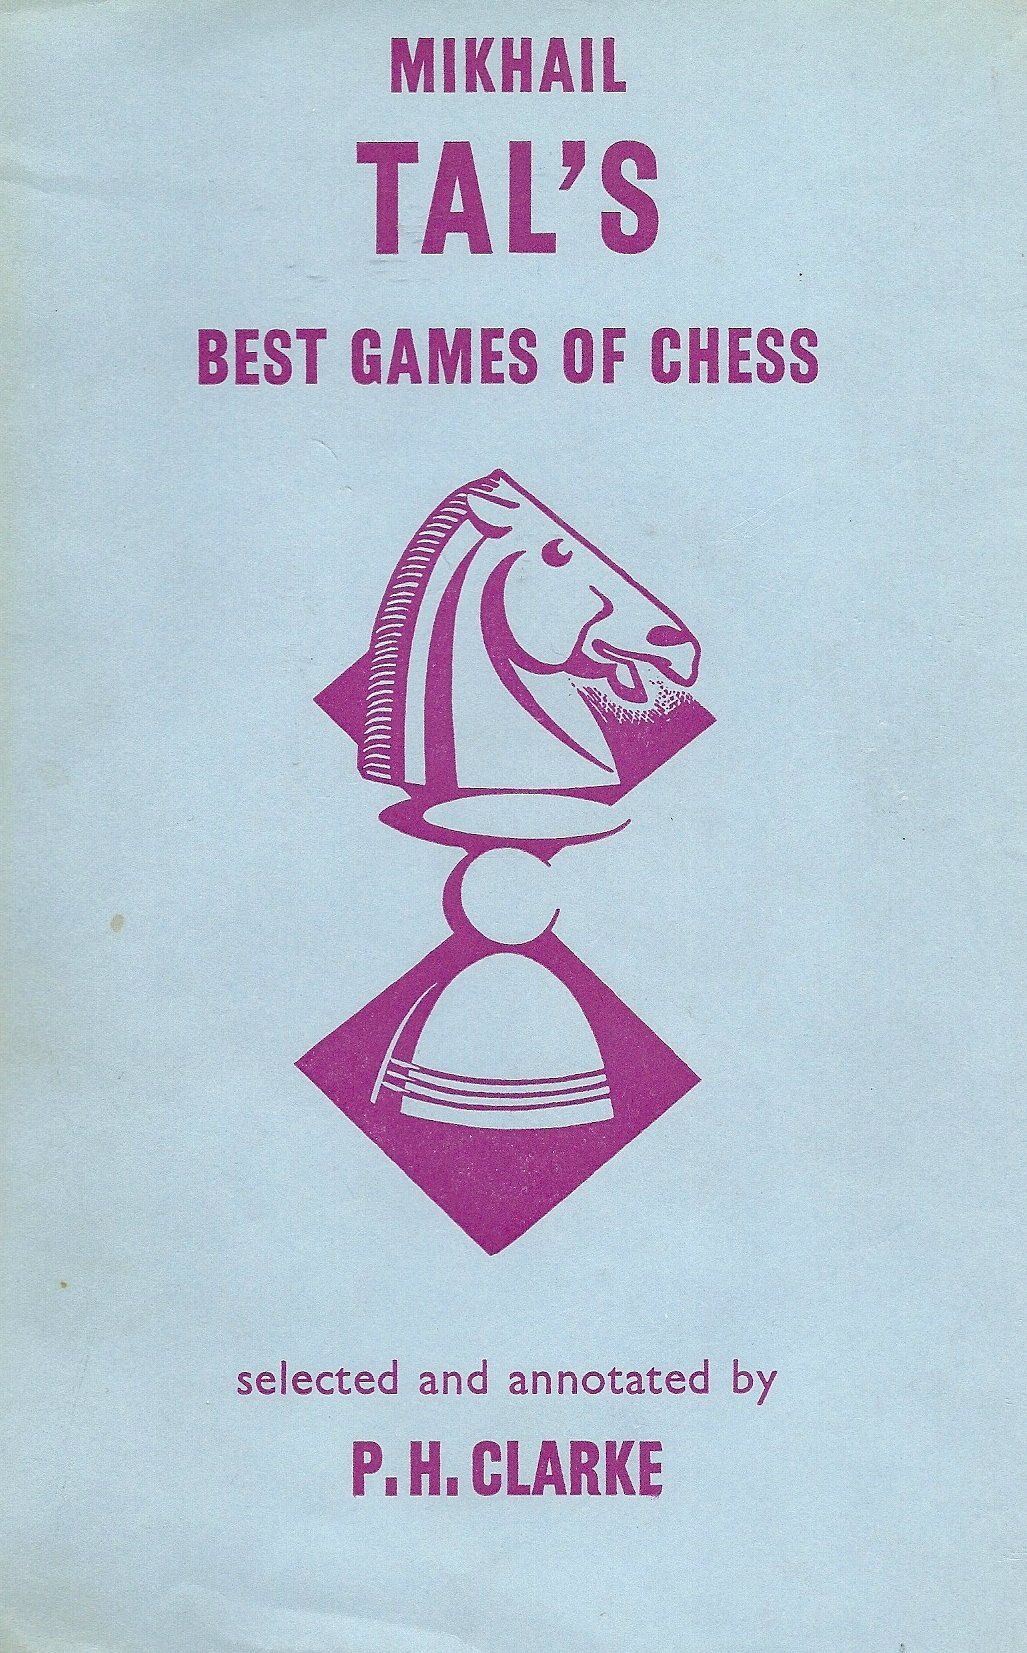 Mikhail Tal's Best Games of Chess, PH Clarke, Bell, 1961